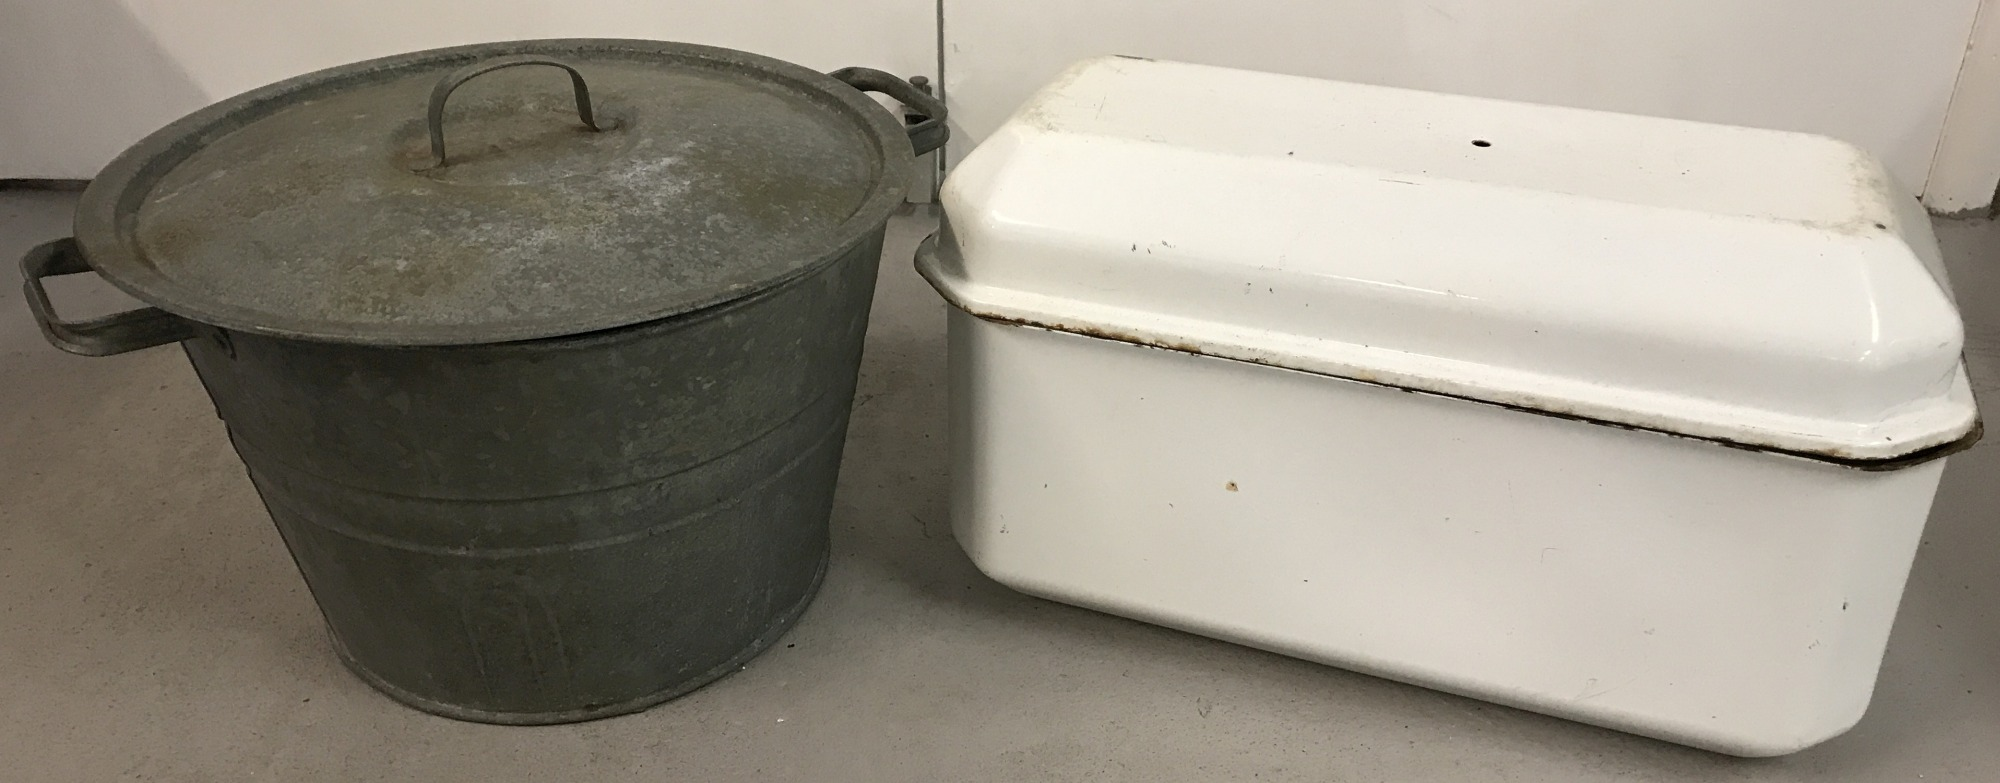 Lot 89 - A vintage galvanised lidded pail with drainage platform insert to interior.